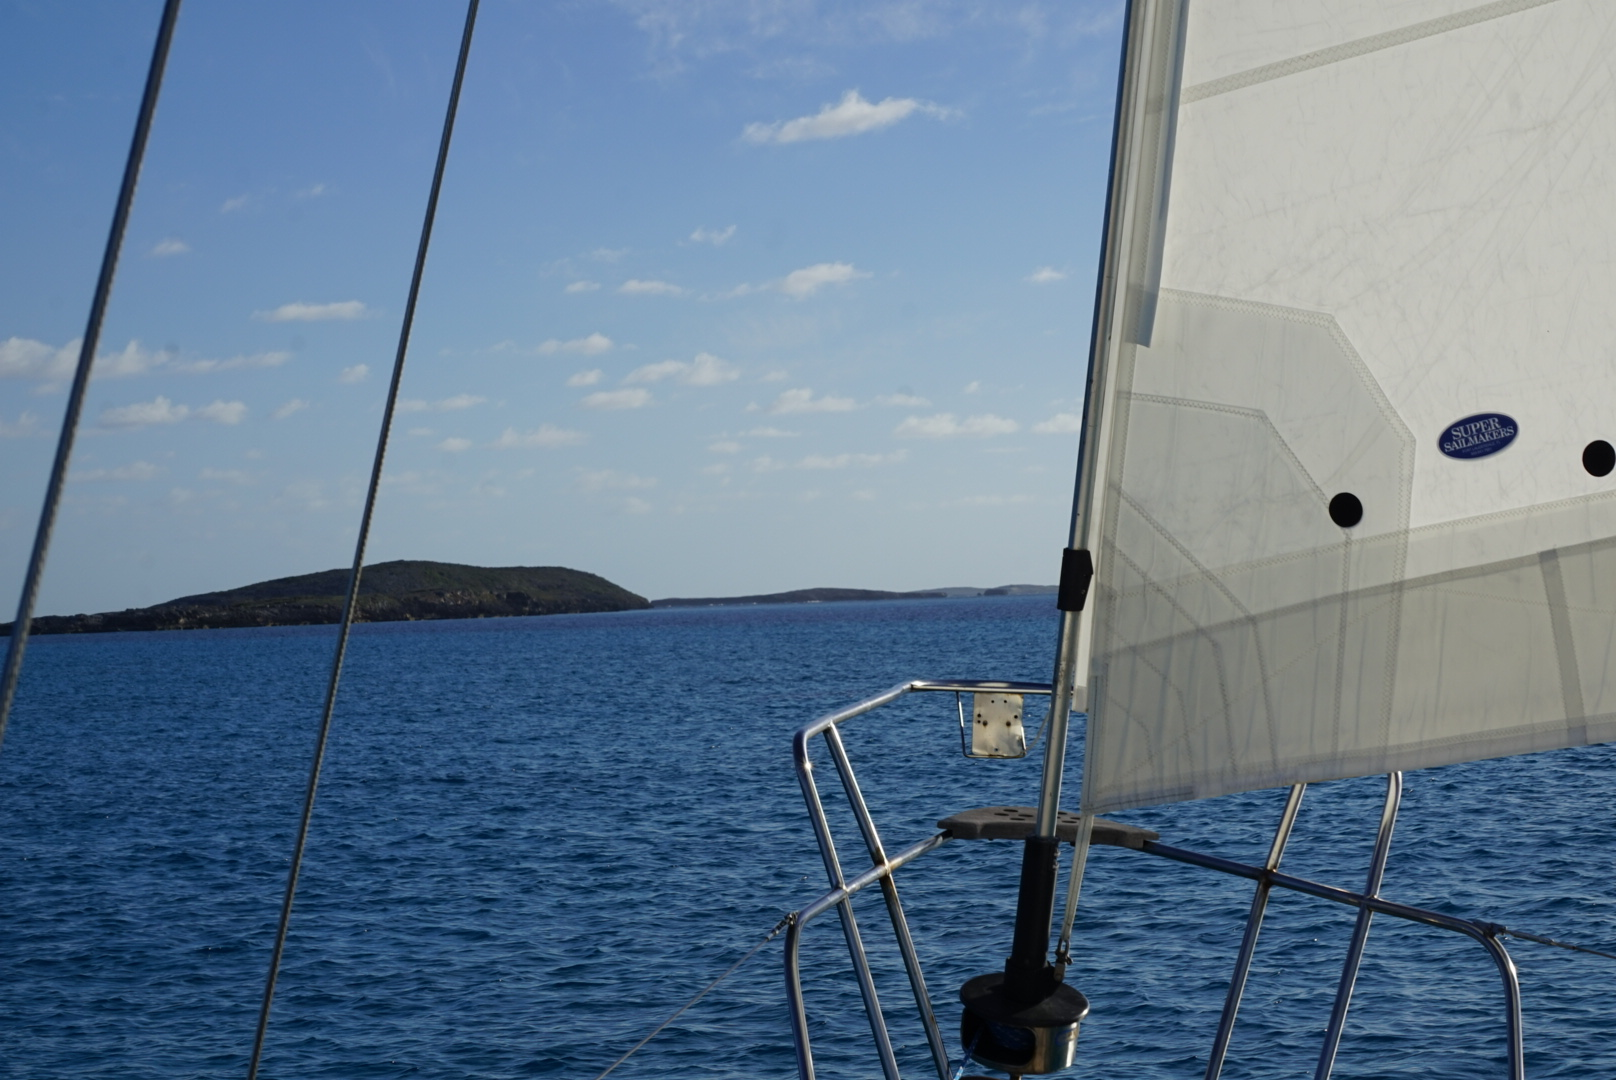 Where do you want to sail to?